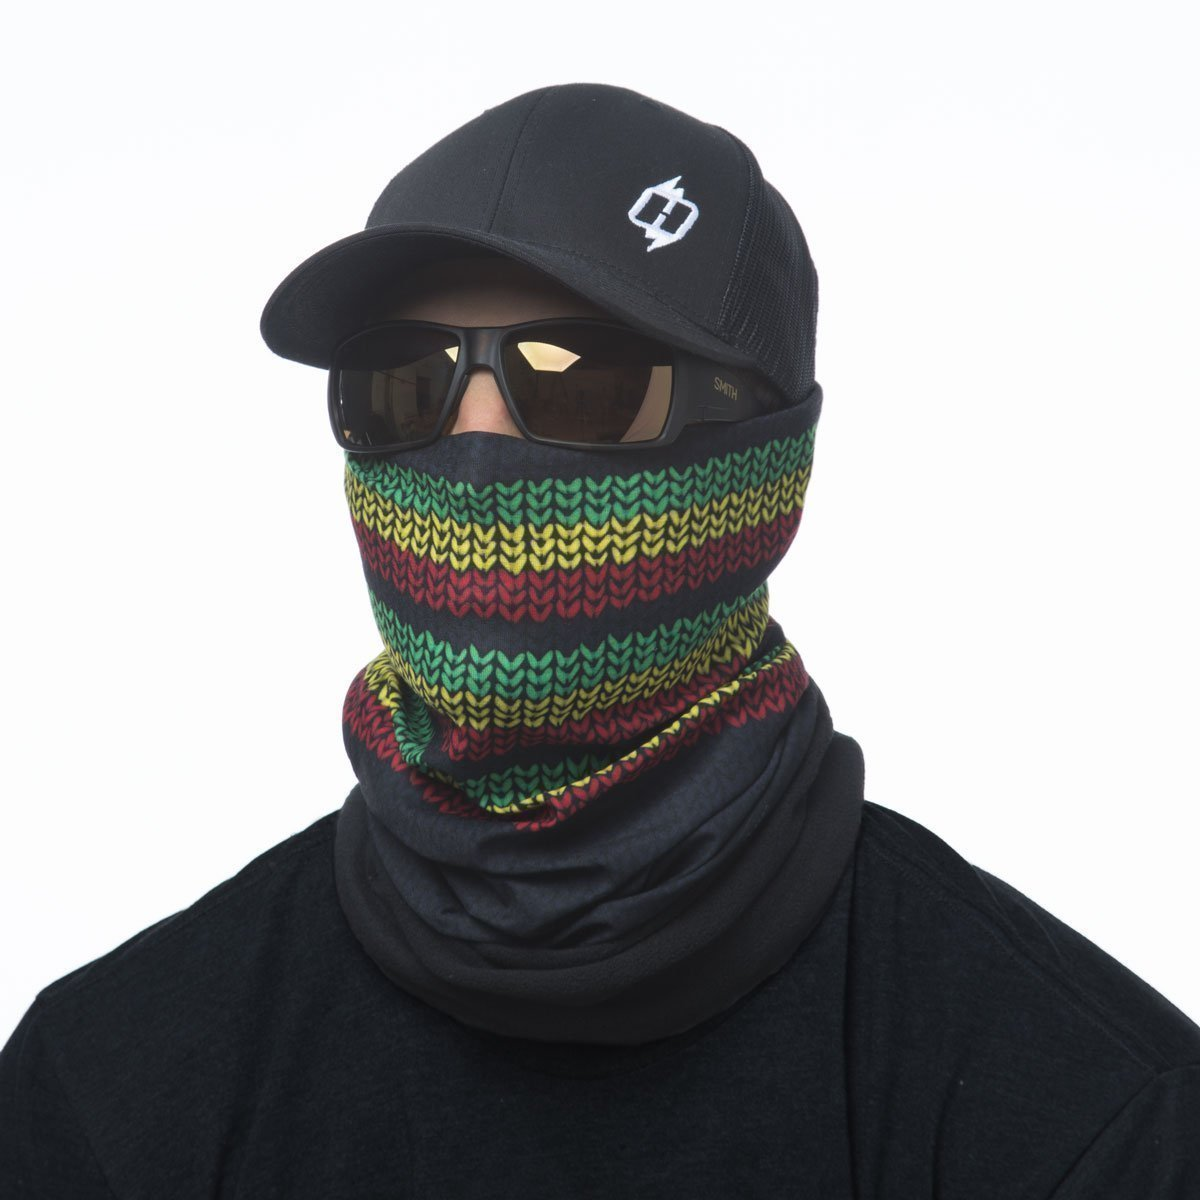 hoorag-sub-zero-one-love-rasta-winter-fleece-face-mask